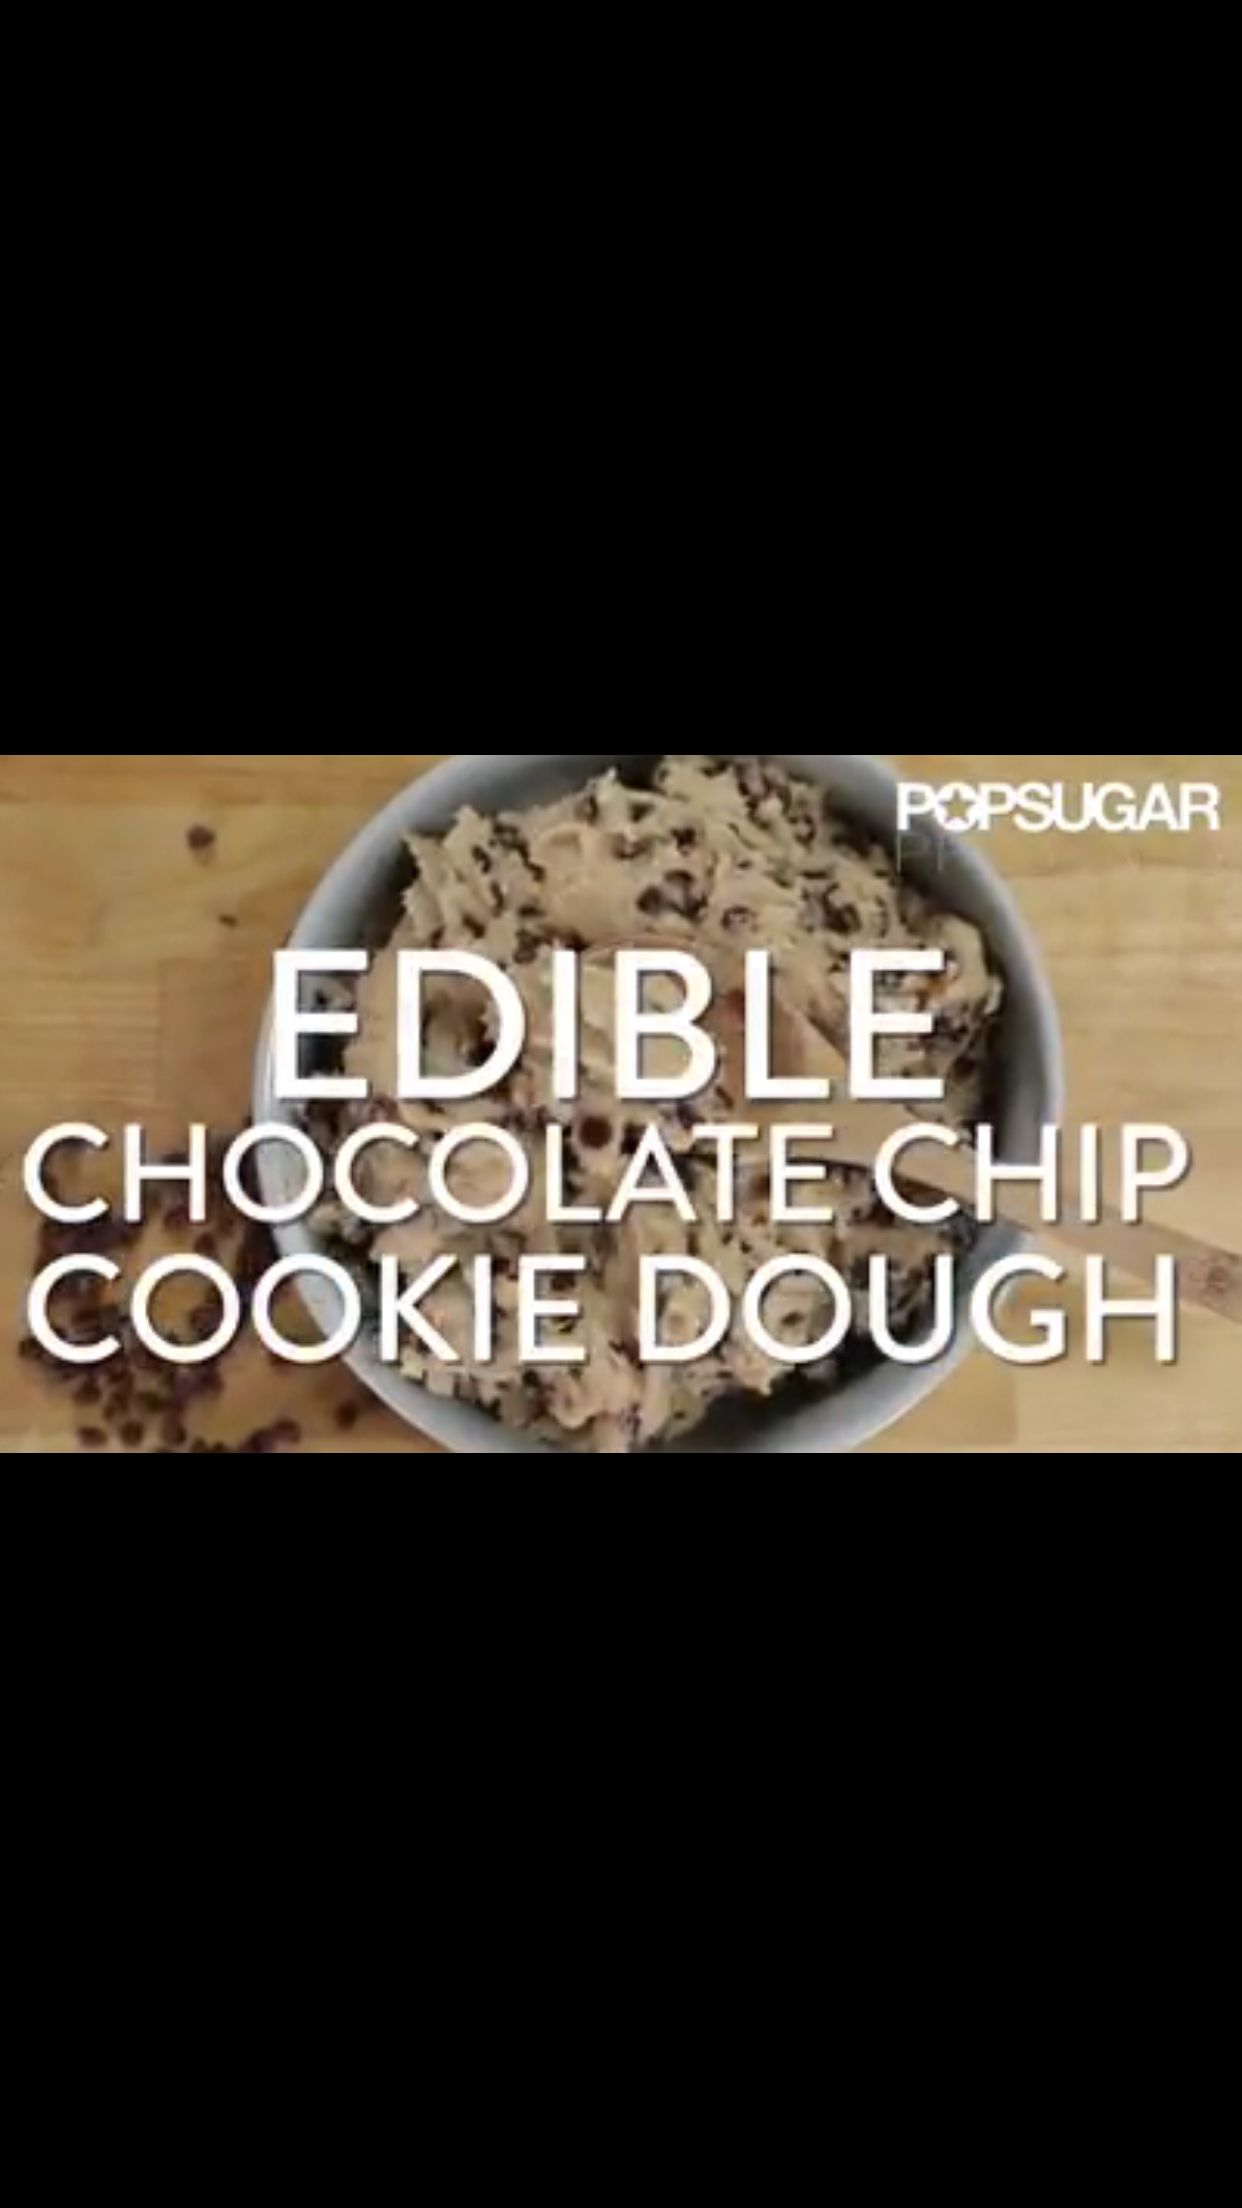 Edible Cookie Dough! It just may be the best invention since sliced bread. here's the link! https://www.facebook.com/video.php?v=10153049822025250